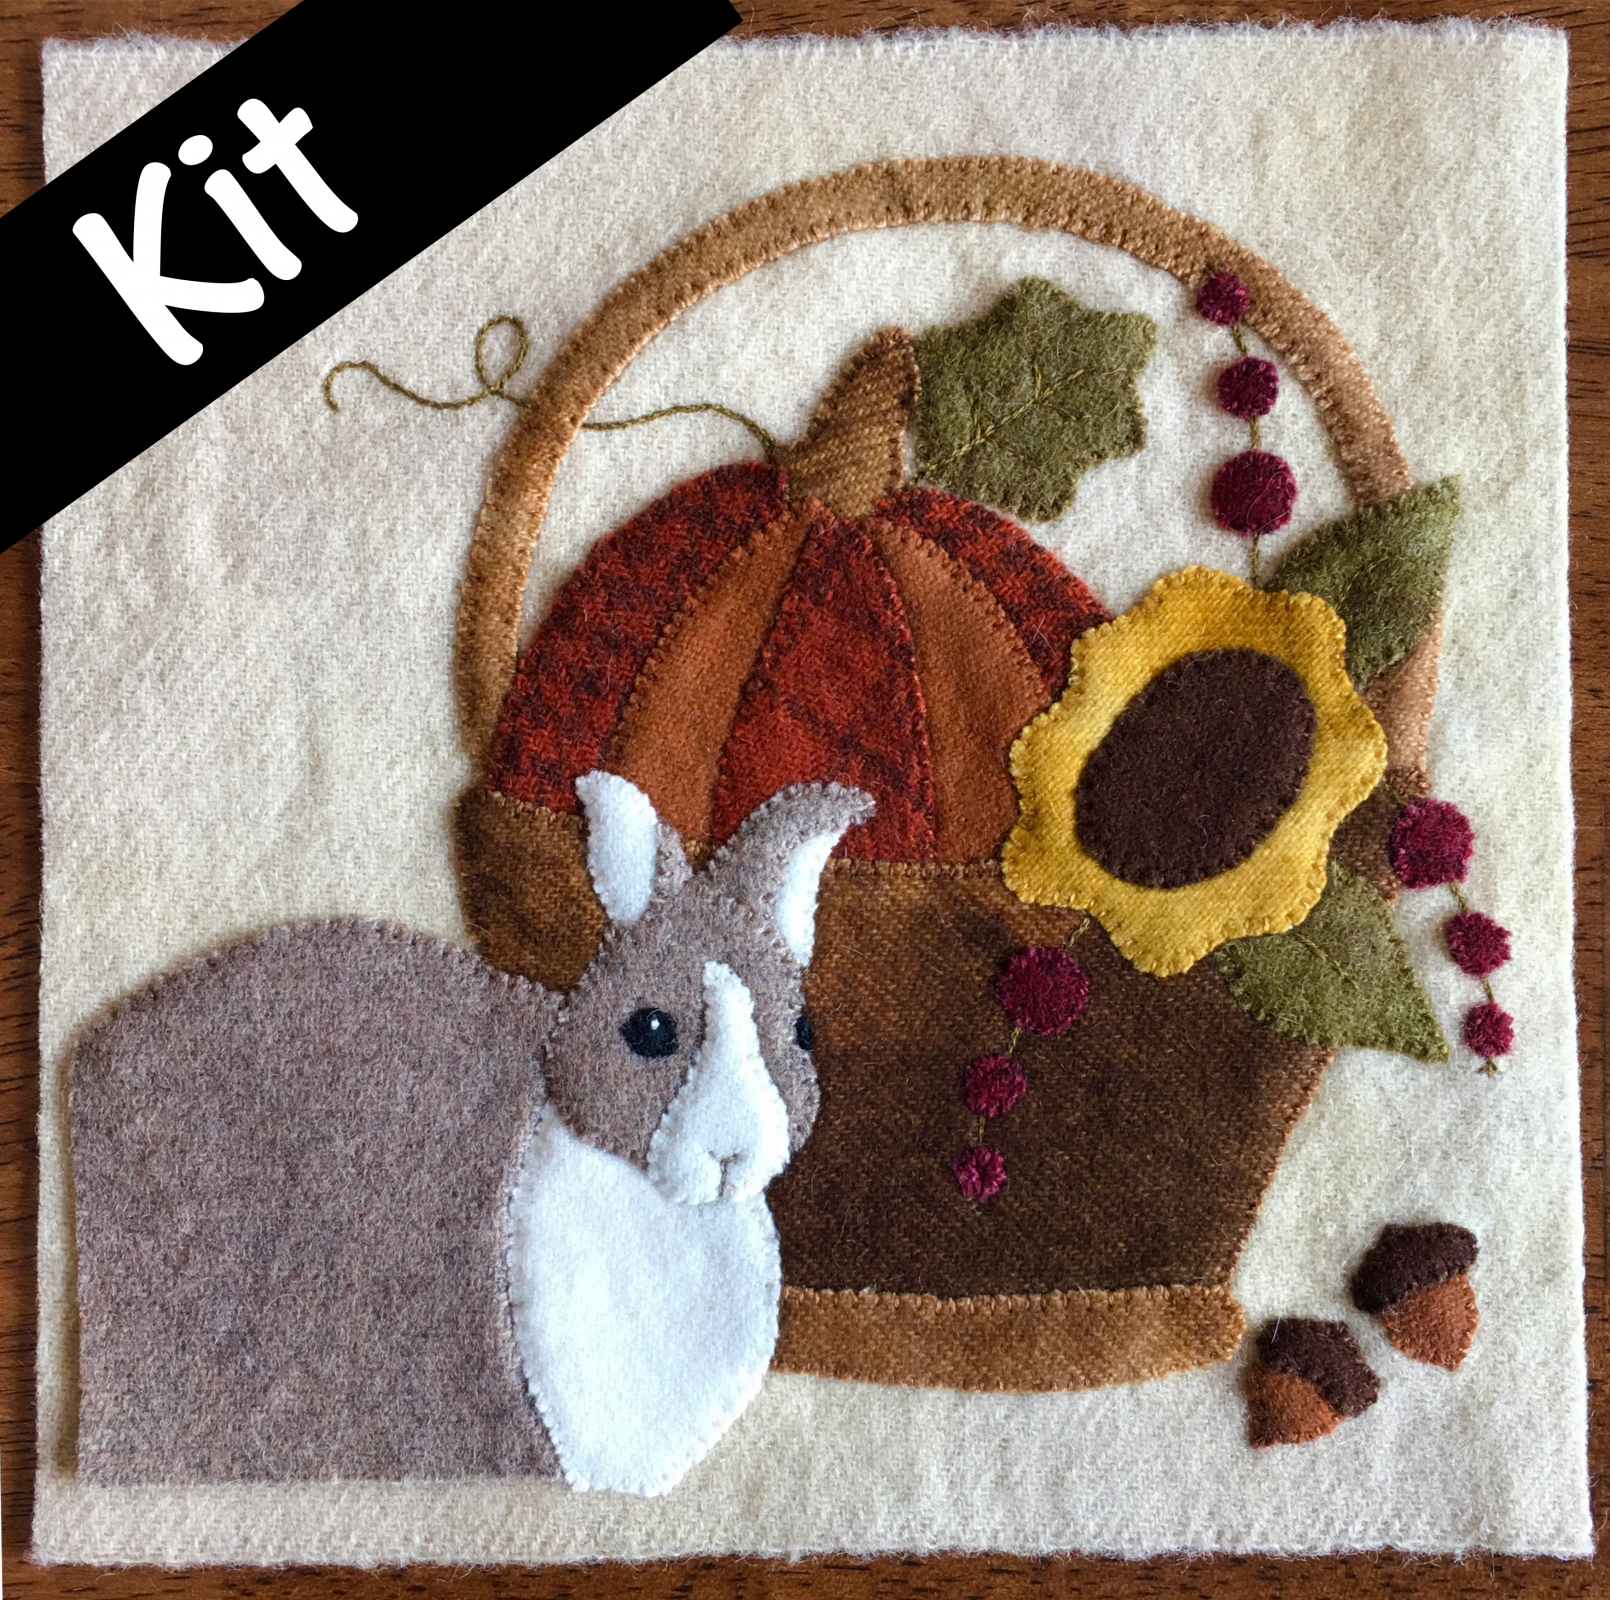 2017 Wooly Block - Wool Kit<br>Includes pattern!